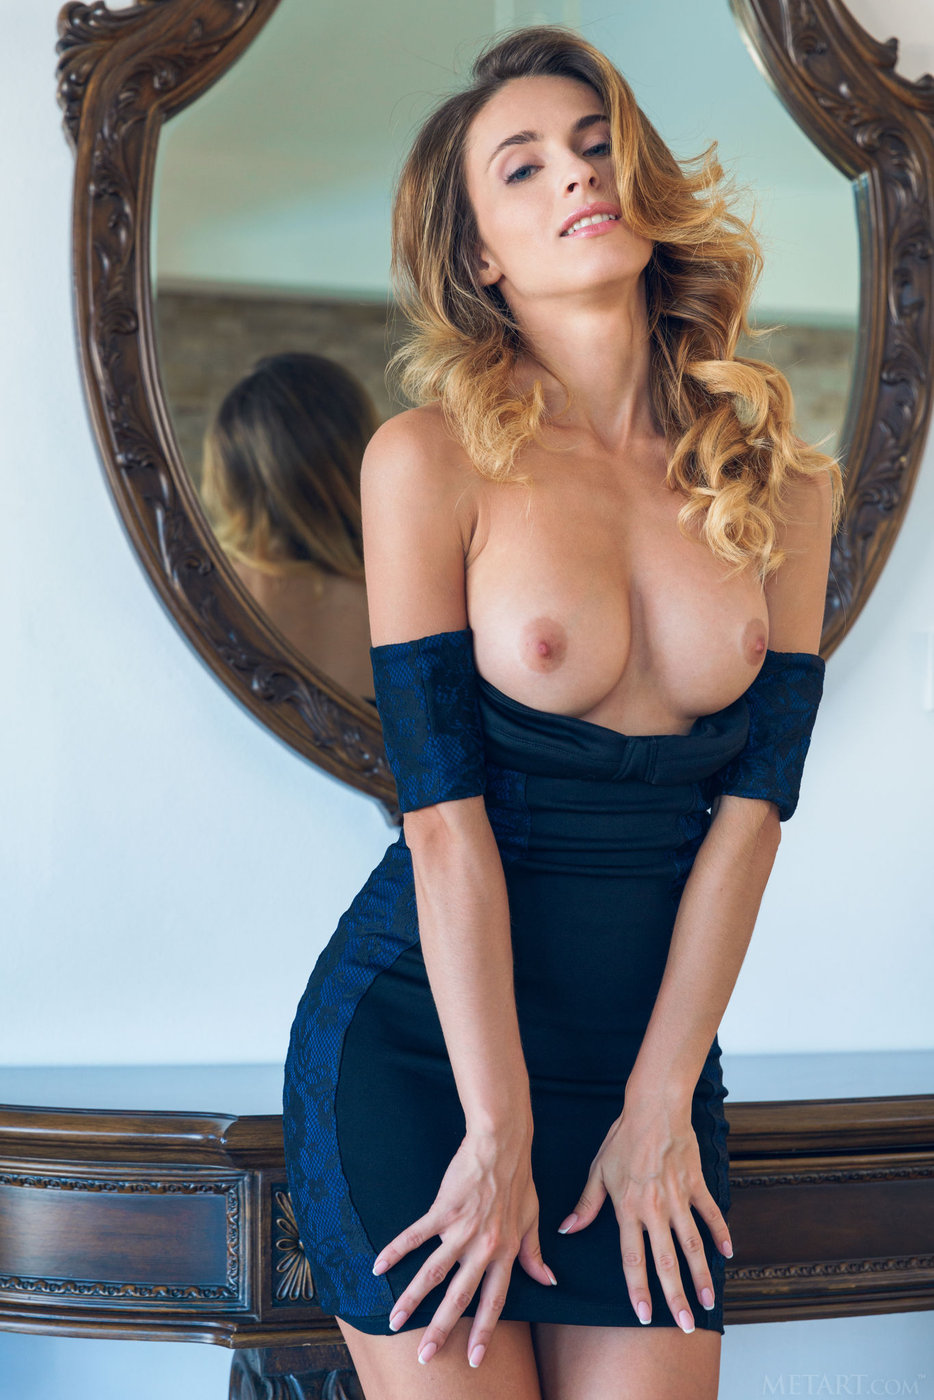 Busty blonde takes off her skintight navy blue dress and poses naked